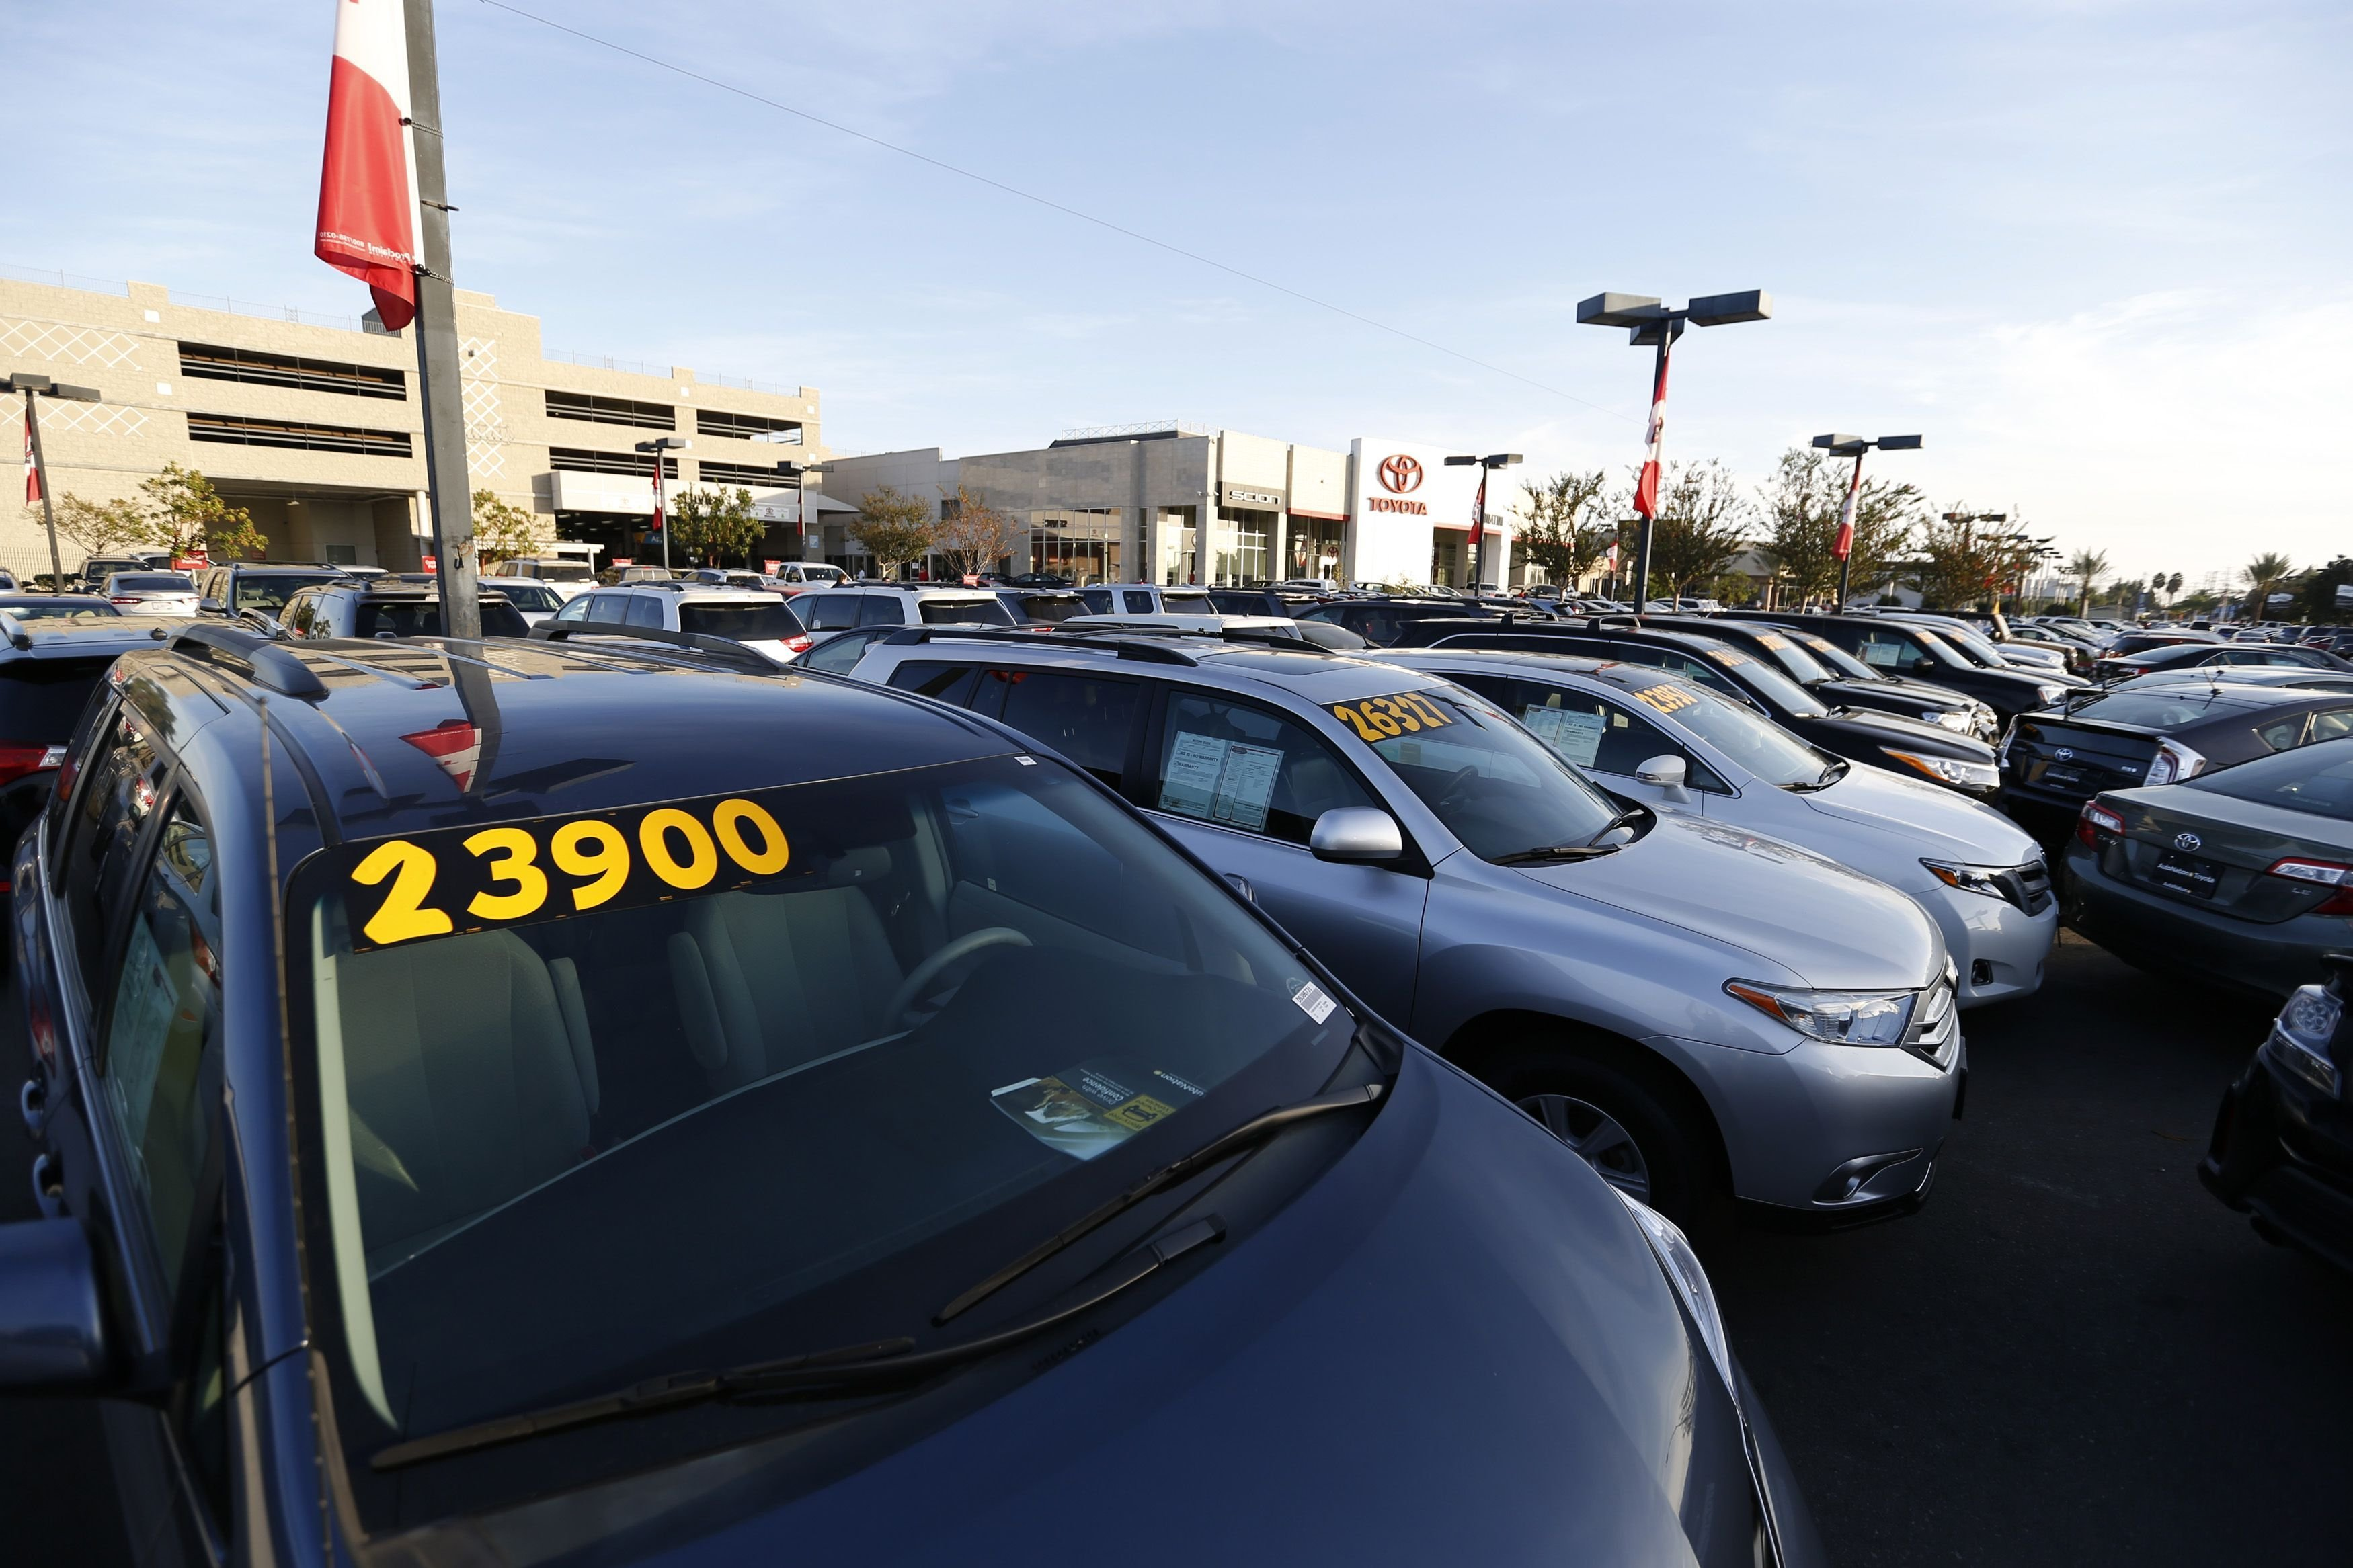 auto dealers own or lease about $130 billion of real estate in the u s according